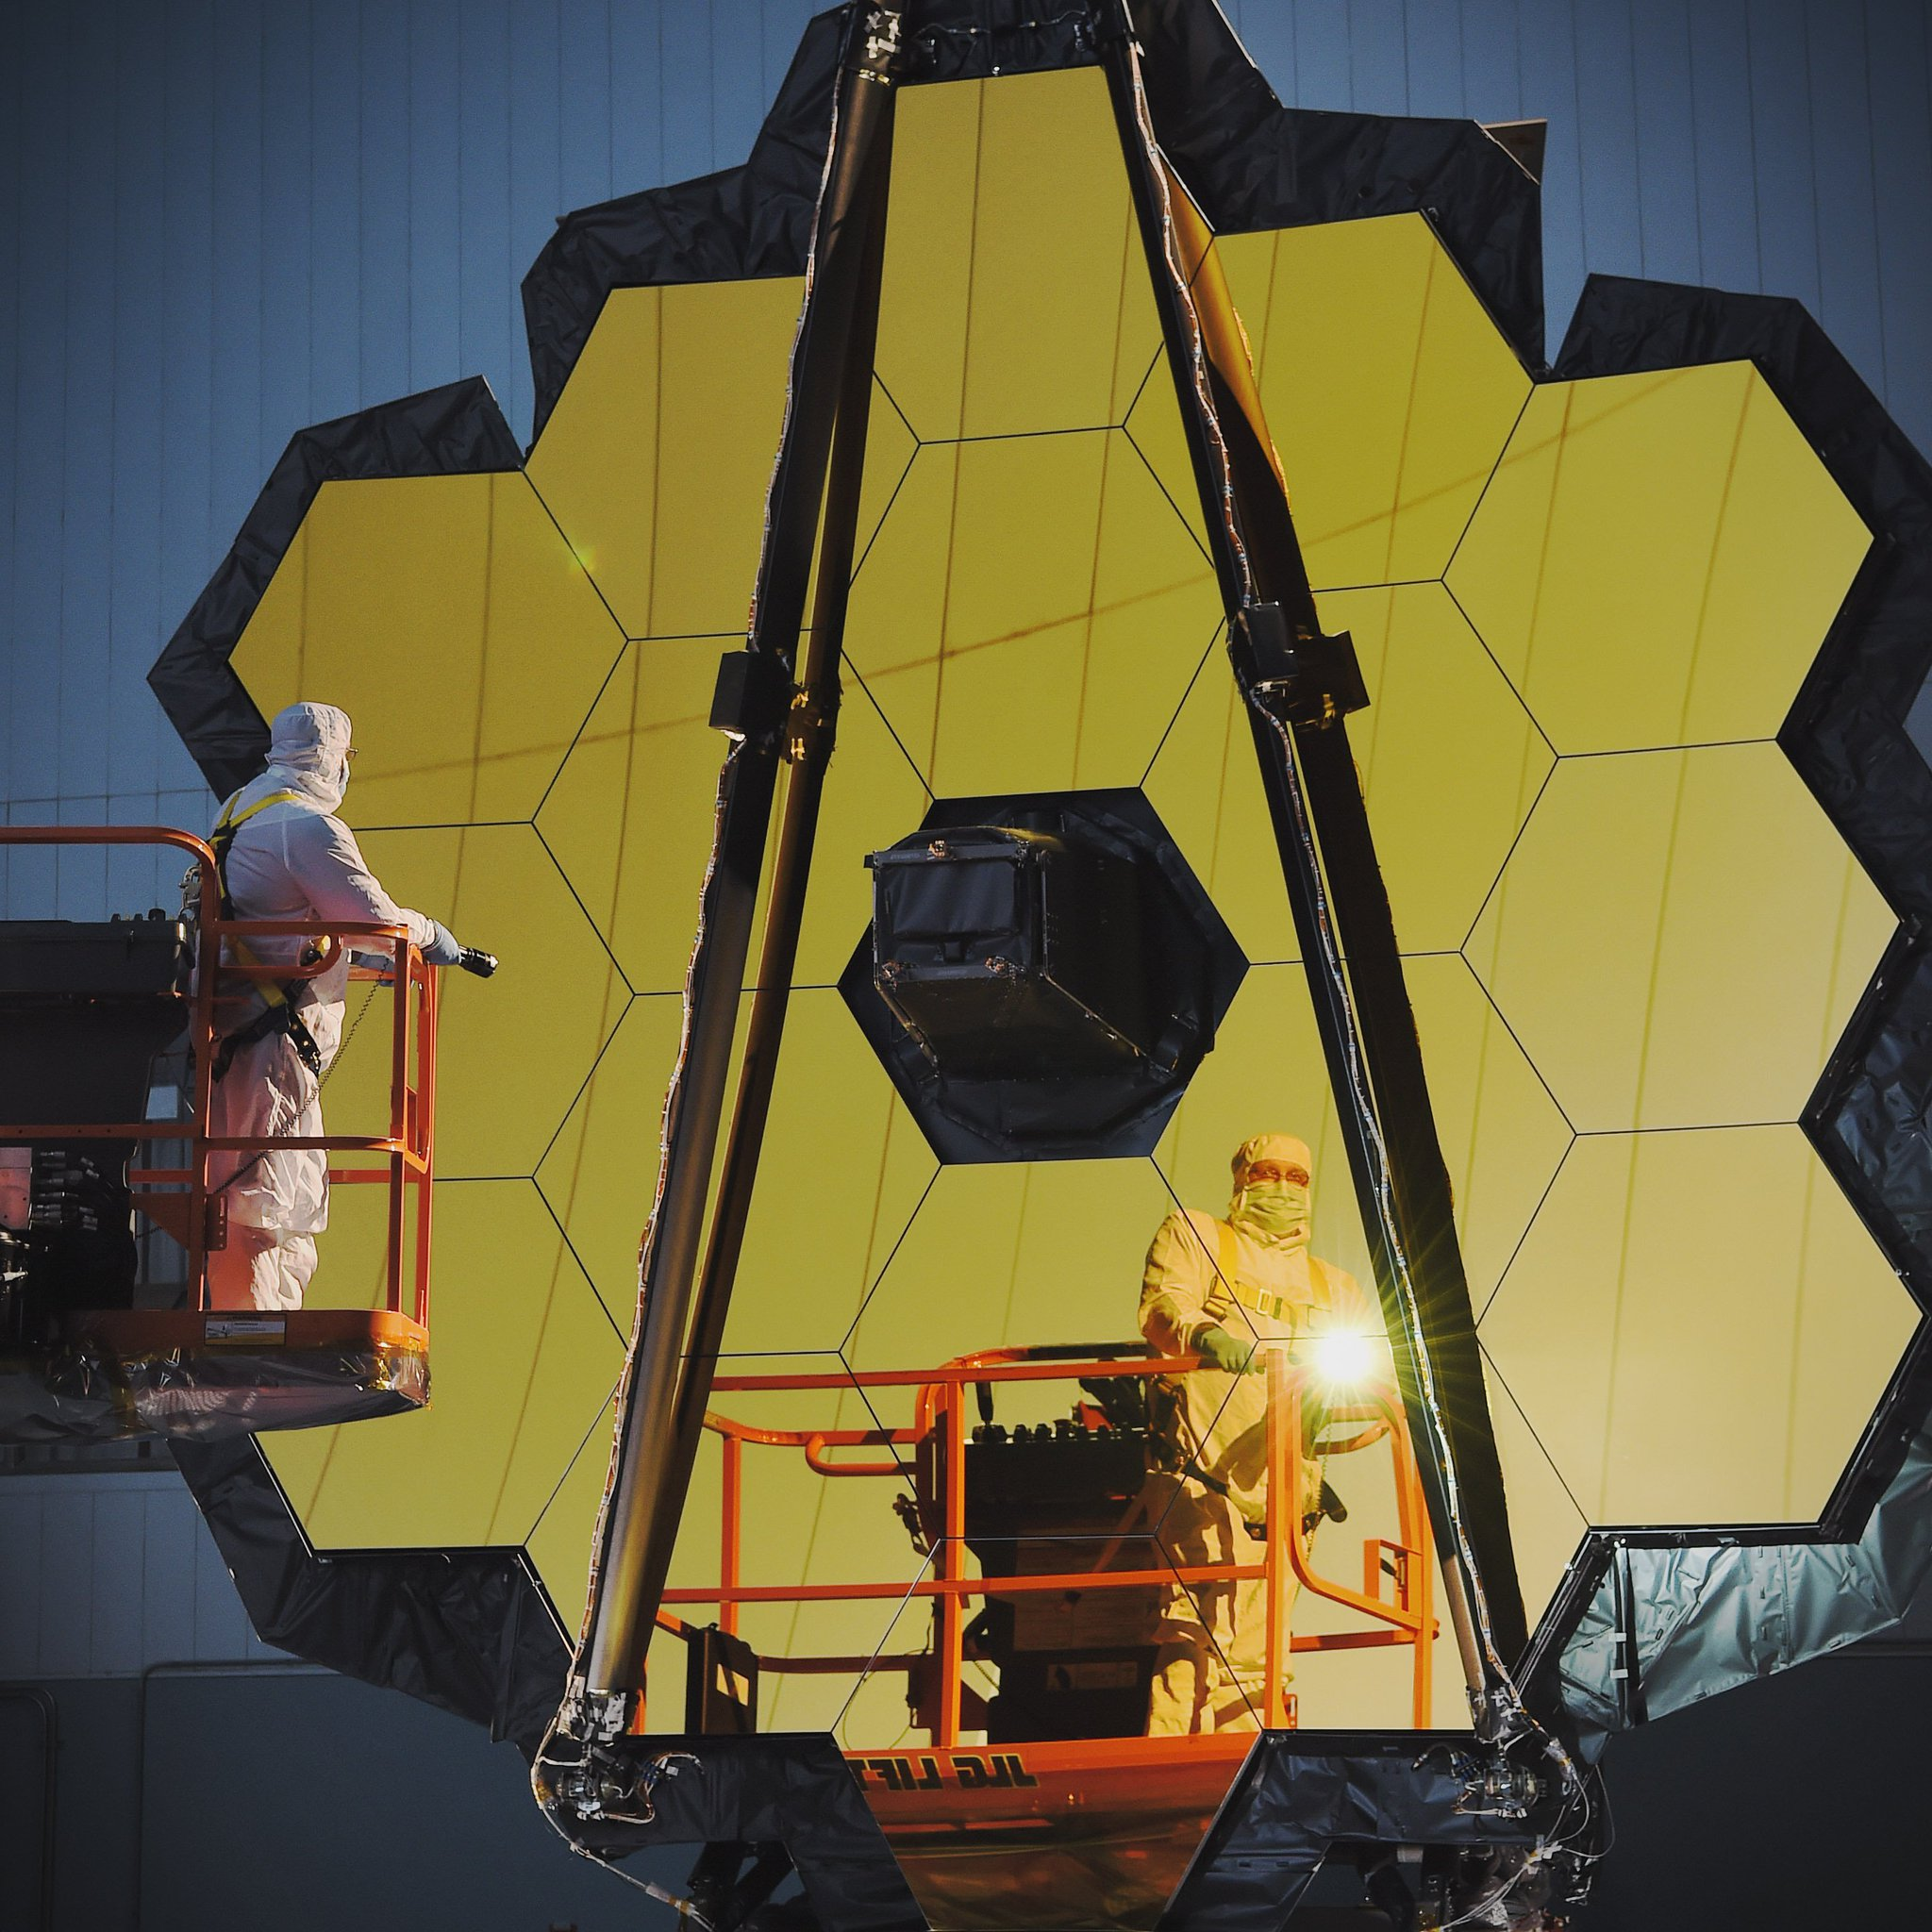 LIVE NOW: Discover more about @NASAWebb, our next generation space telescope. Questions? Use #askNASA https://t.co/1UI9wJme1s